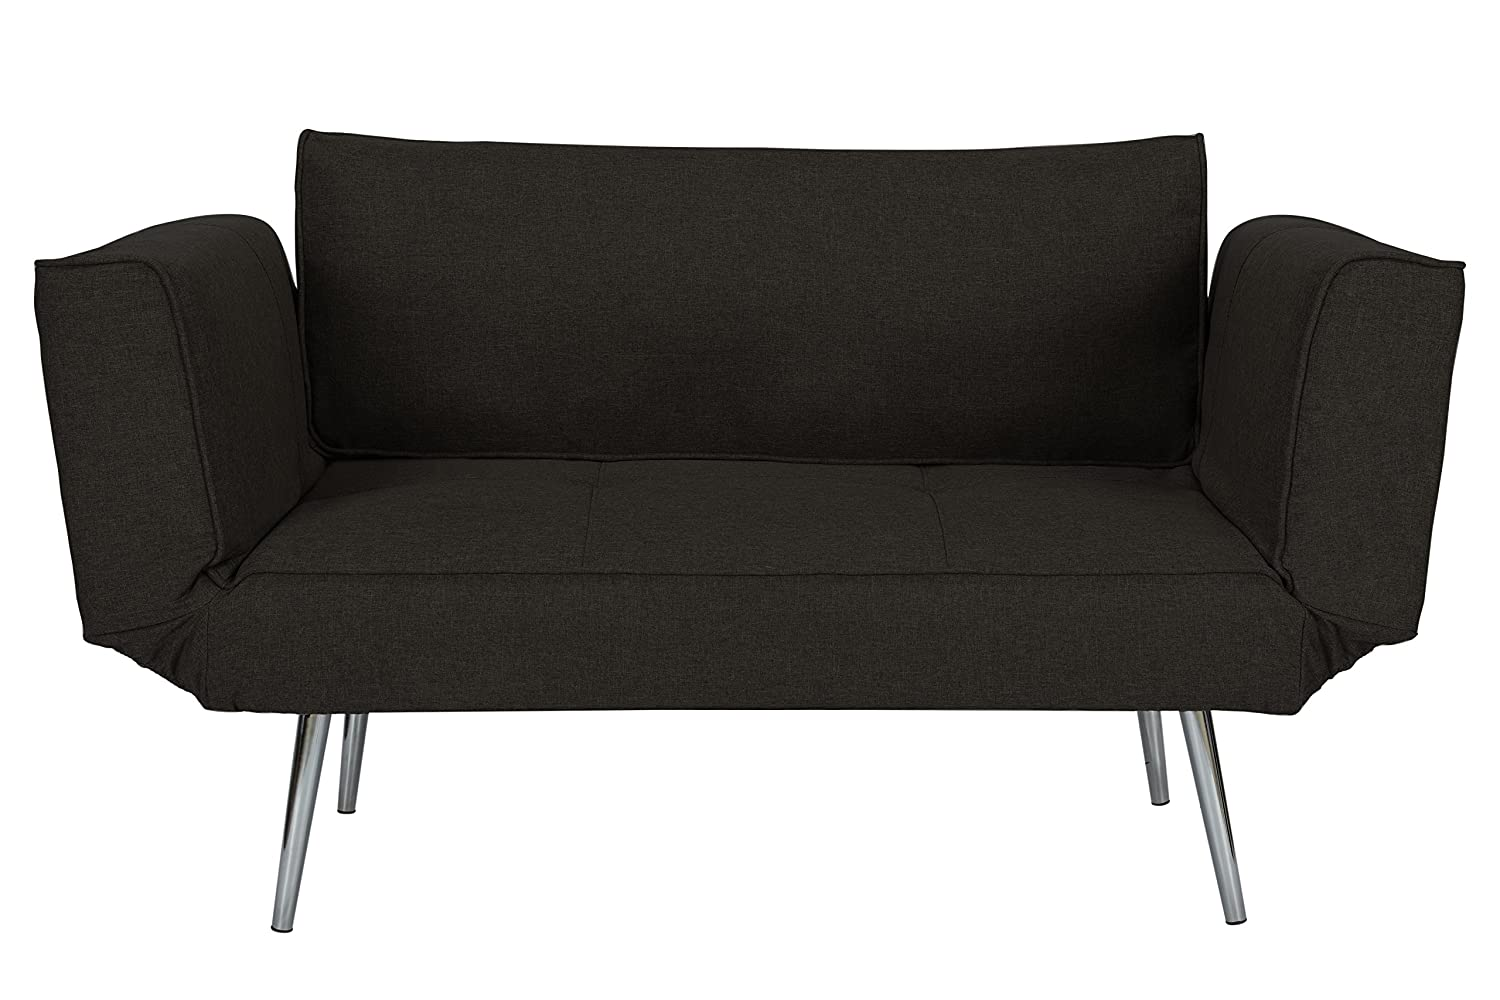 Superieur Amazon.com: DHP Euro Sofa Futon Loveseat With Chrome Legs And Adjustable  Armrests   Black: Home U0026 Kitchen